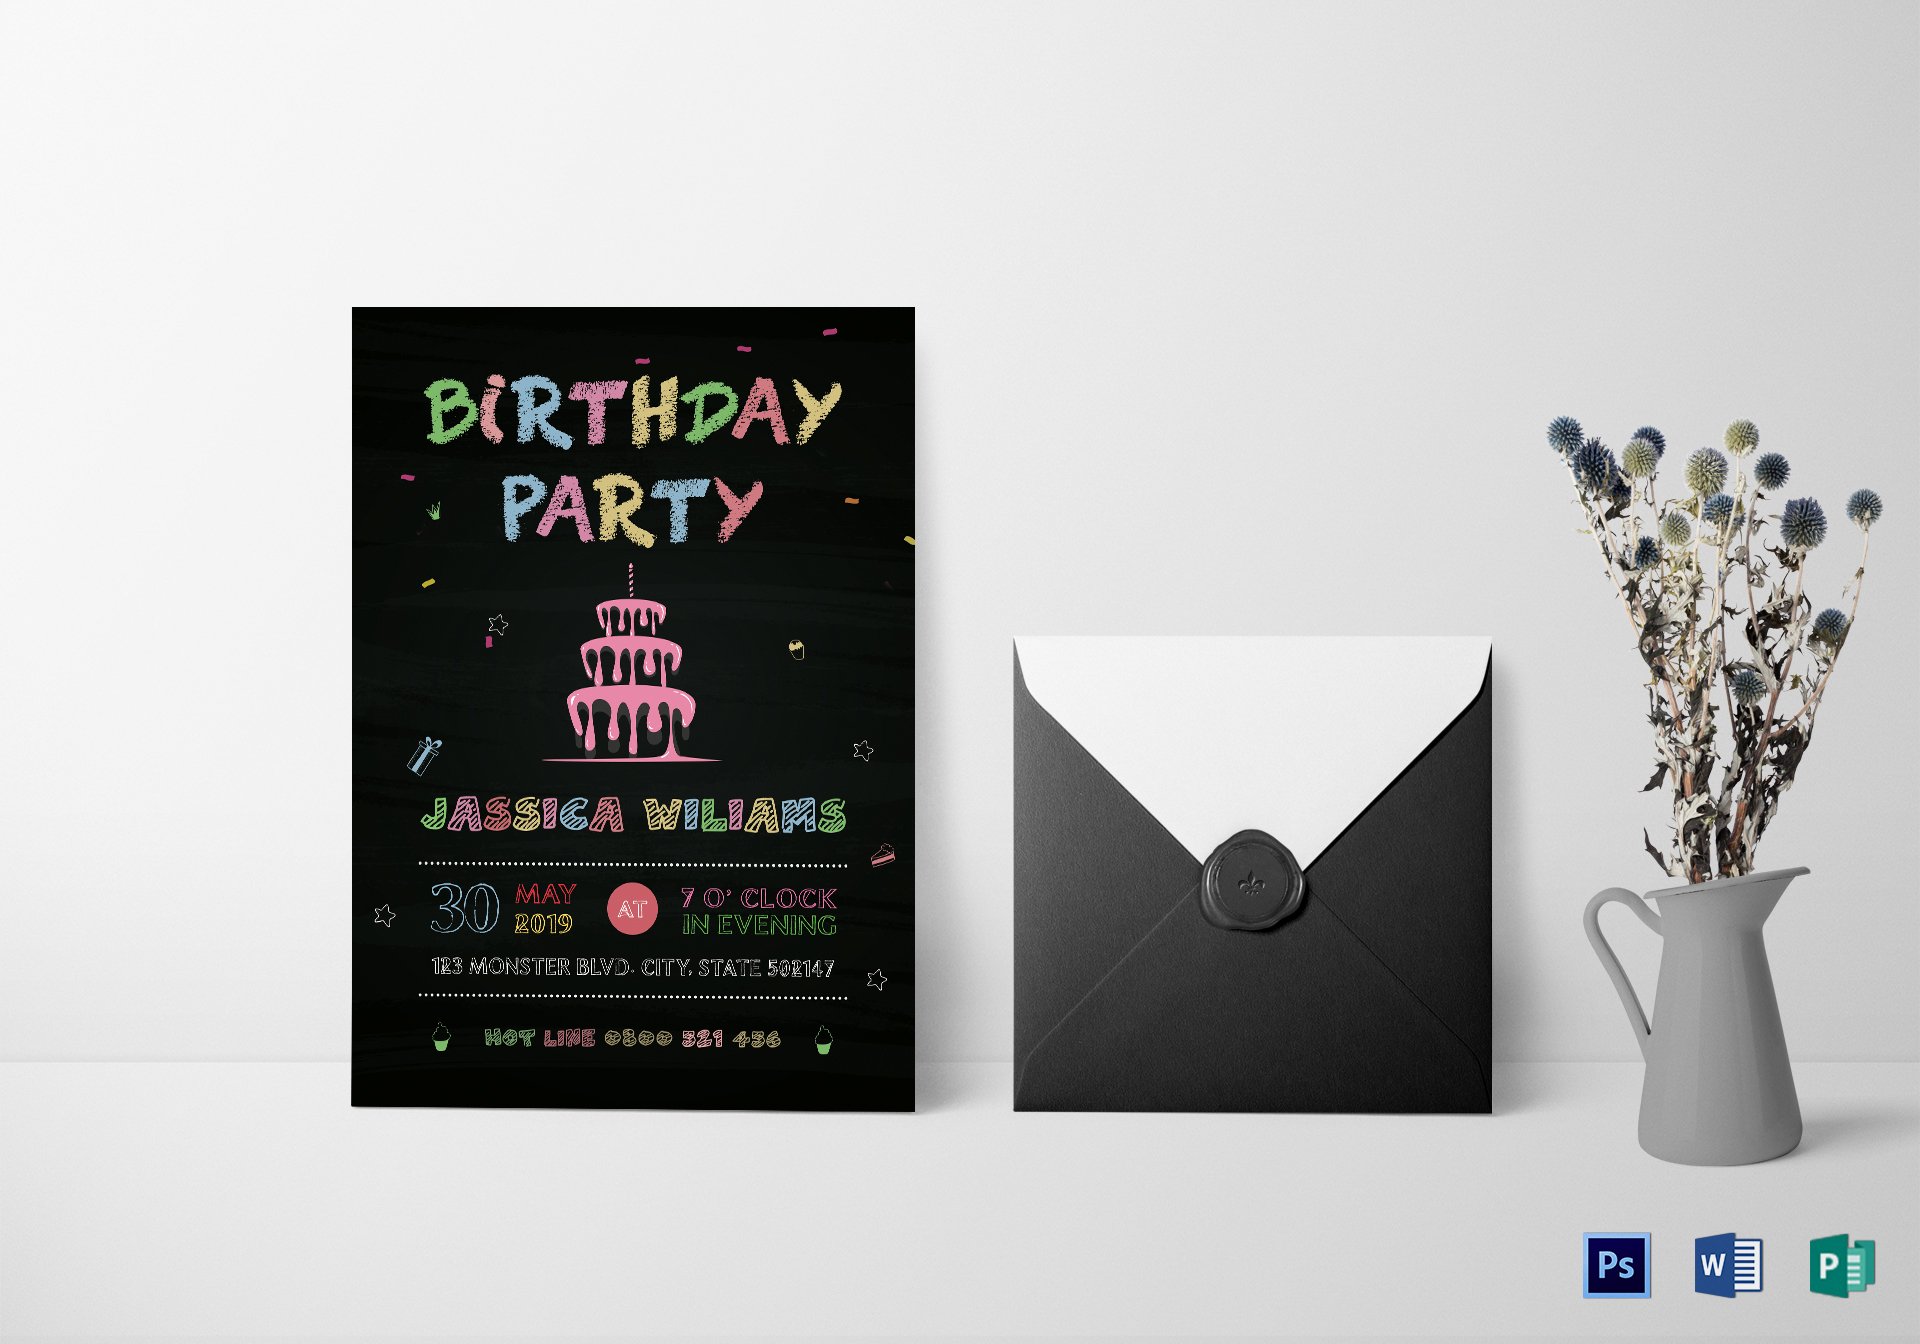 chalkboard birthday party invitation design template in word psd